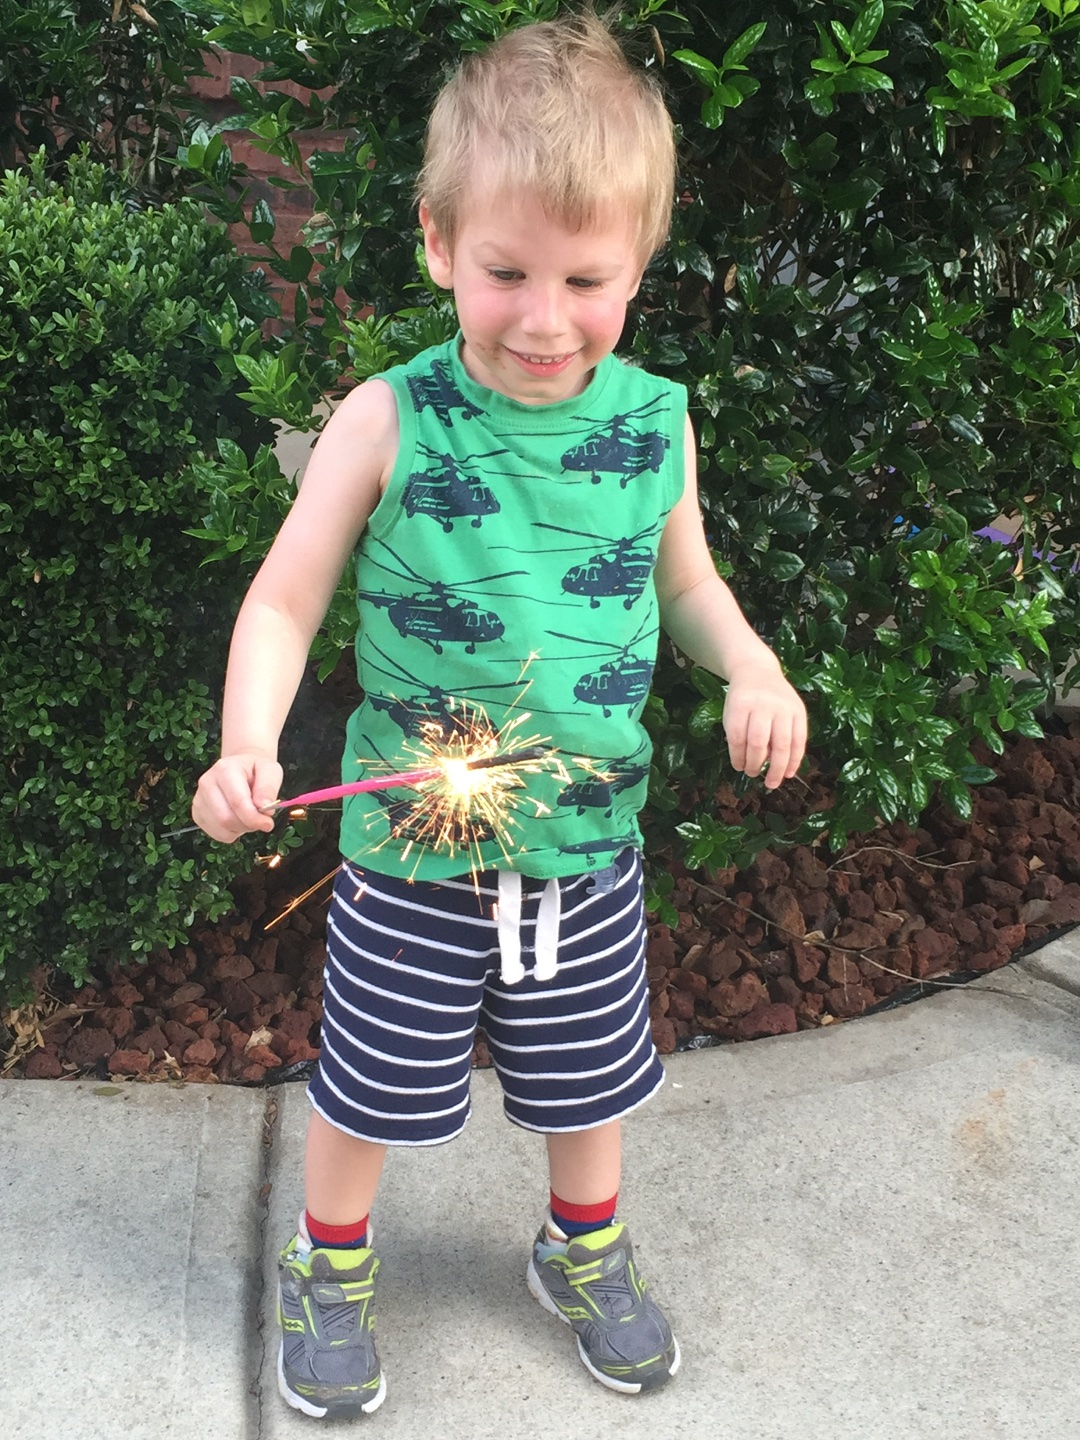 Silas after full recovery from heart transplant with Sparkler | Heart Transplant Story